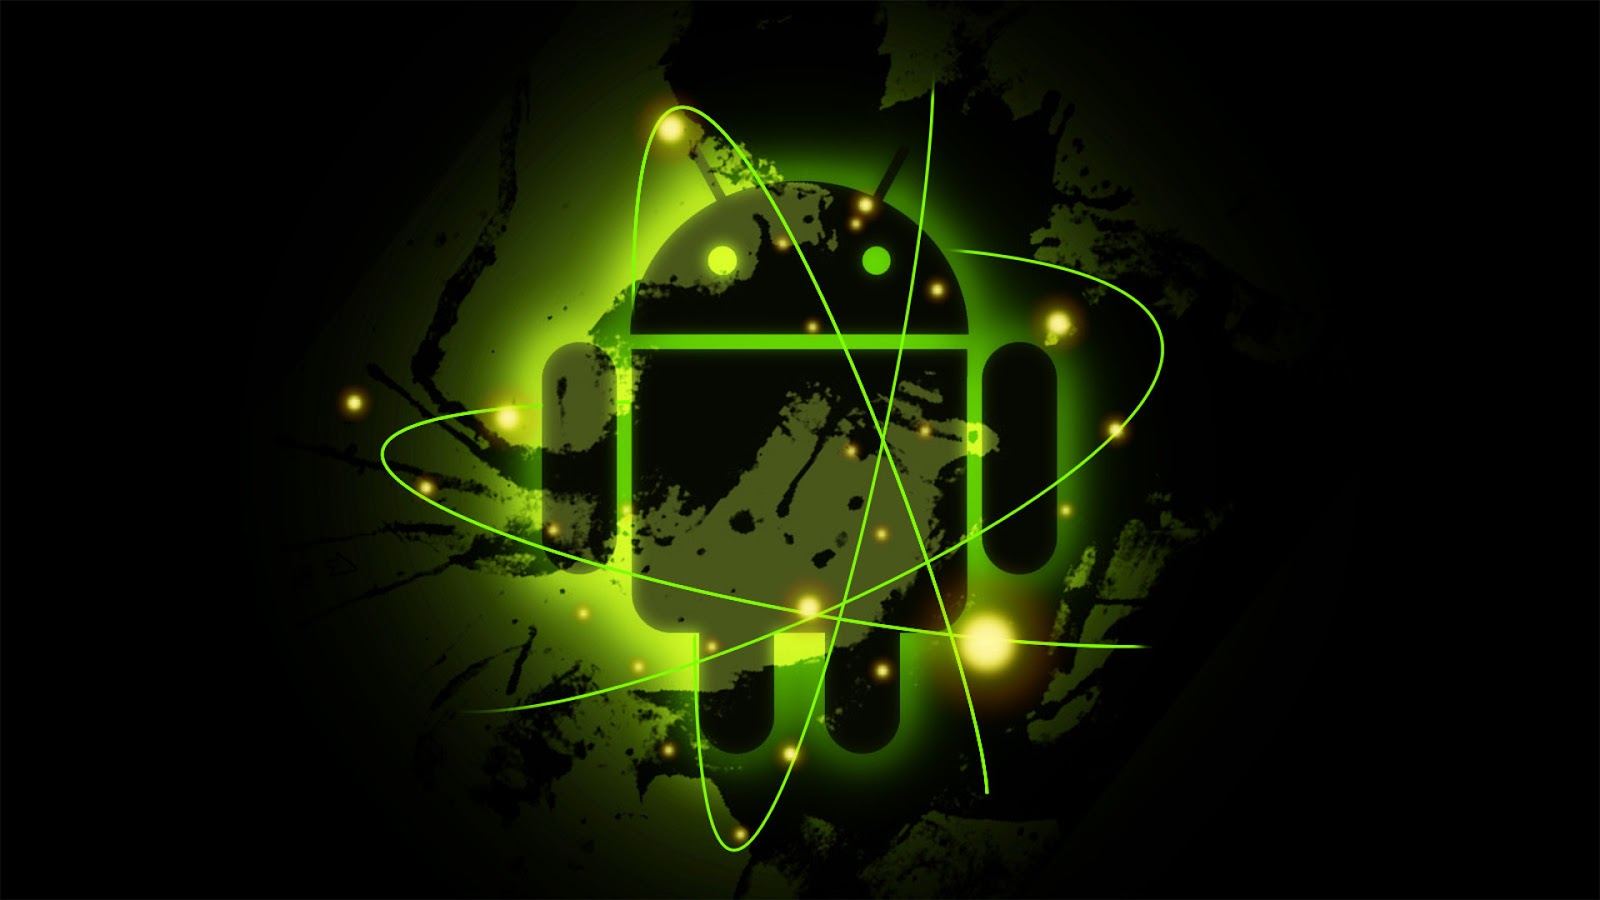 HD Green 3D Wallpaper for Android